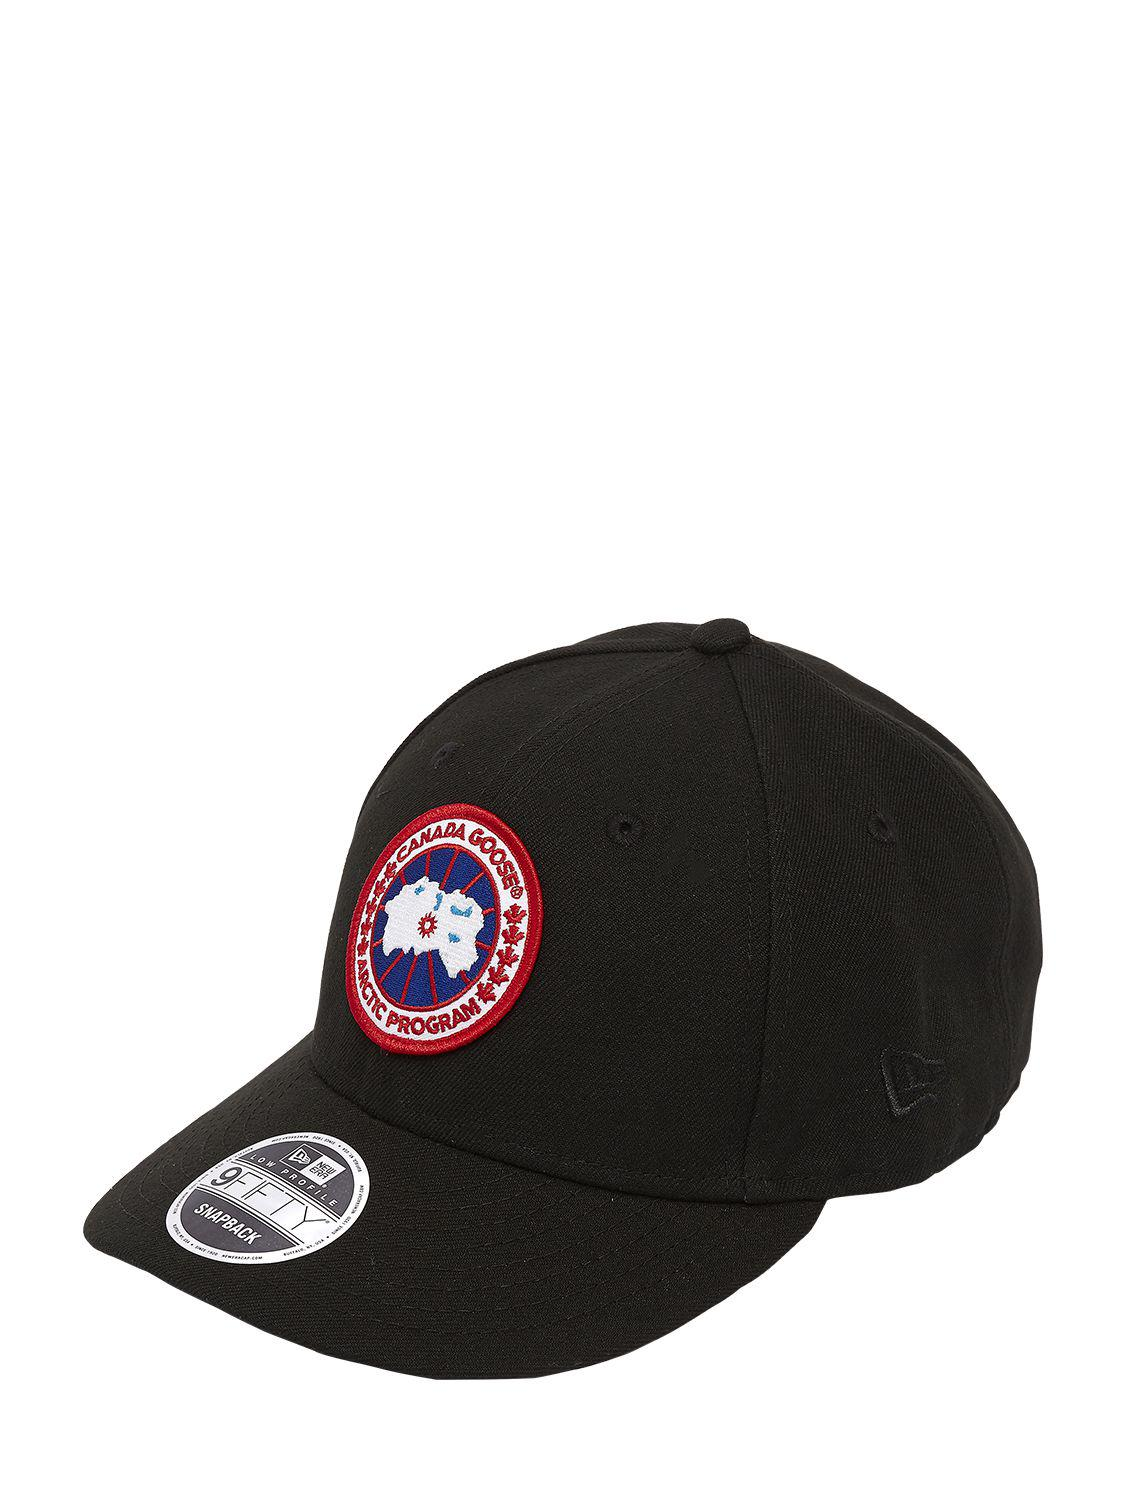 Canada Goose Core Cap New Era 9fifty Hat in Black for Men - Lyst 36eb049696b